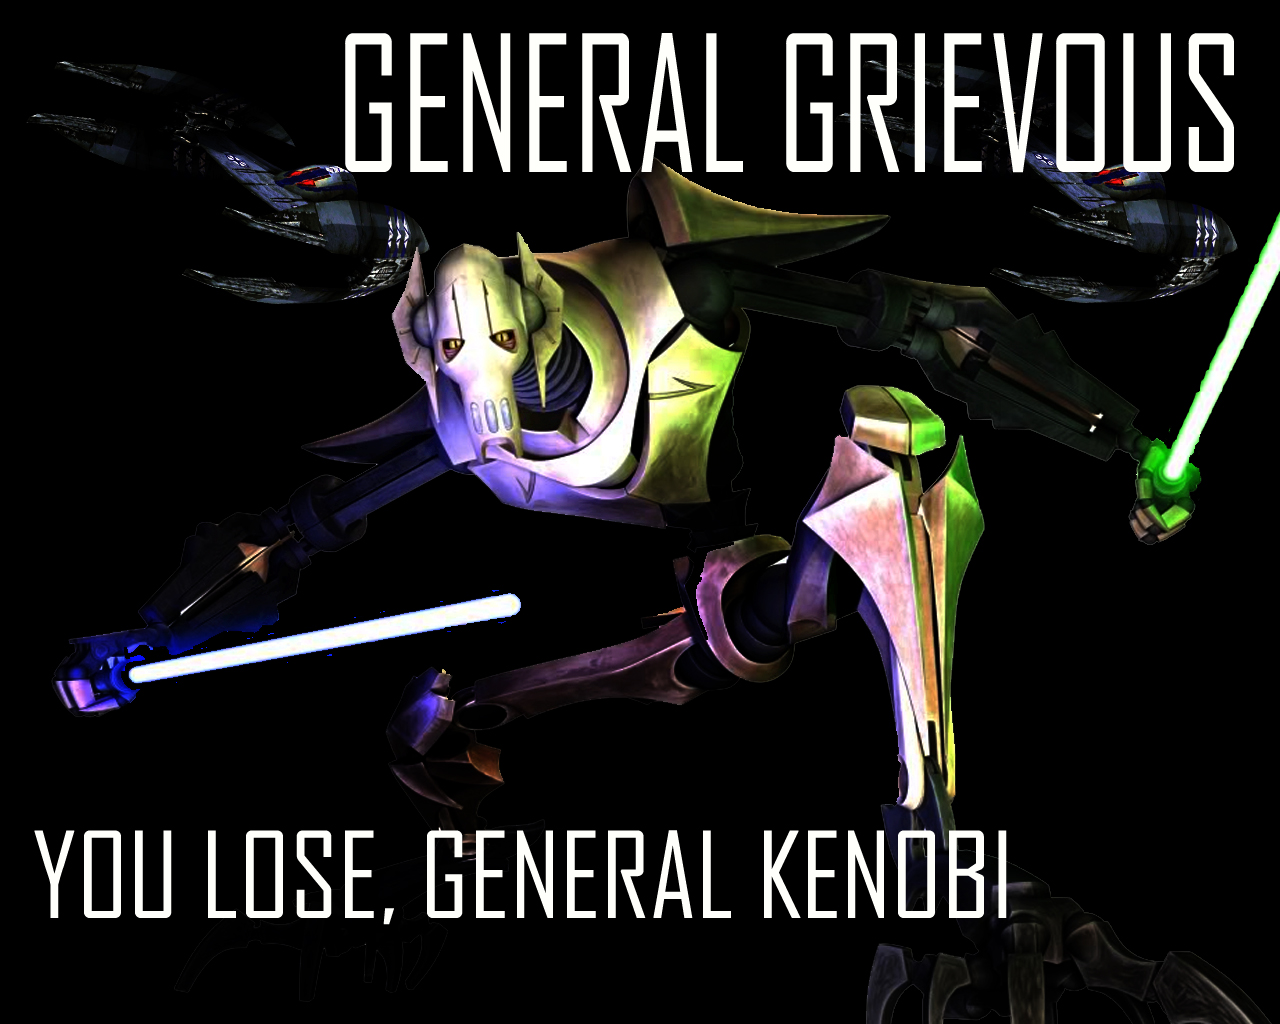 General Grievous Wallpaper 2 By Lordstrscream94 On Deviantart